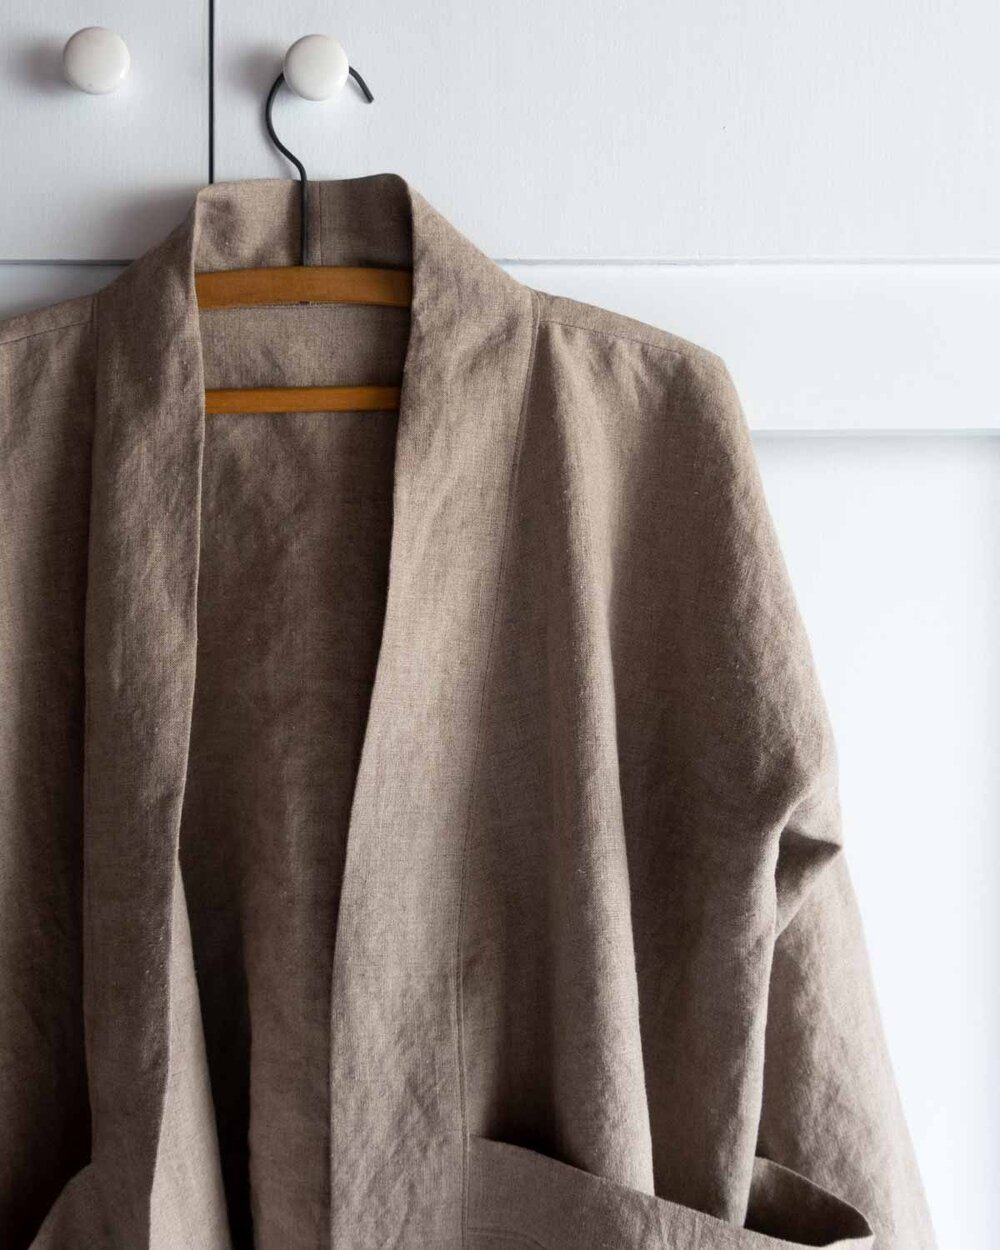 Seam finishes for the Tasi Robe and Jacket